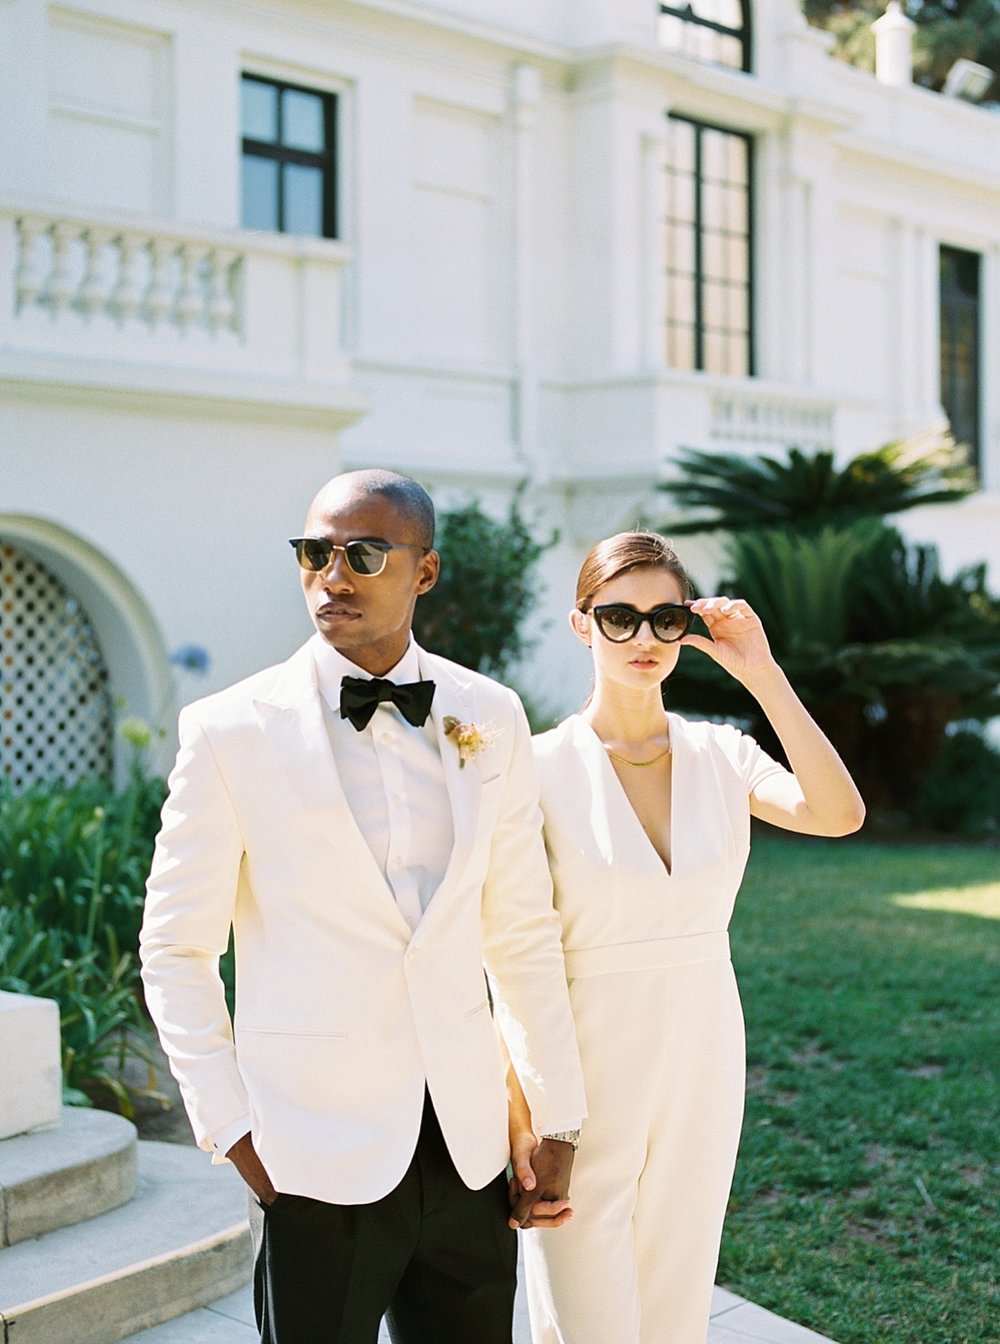 Groom with mid-century modern style in gogosha optique sunglasses for his wedding at Fenyes Mansion in Pasadena, California